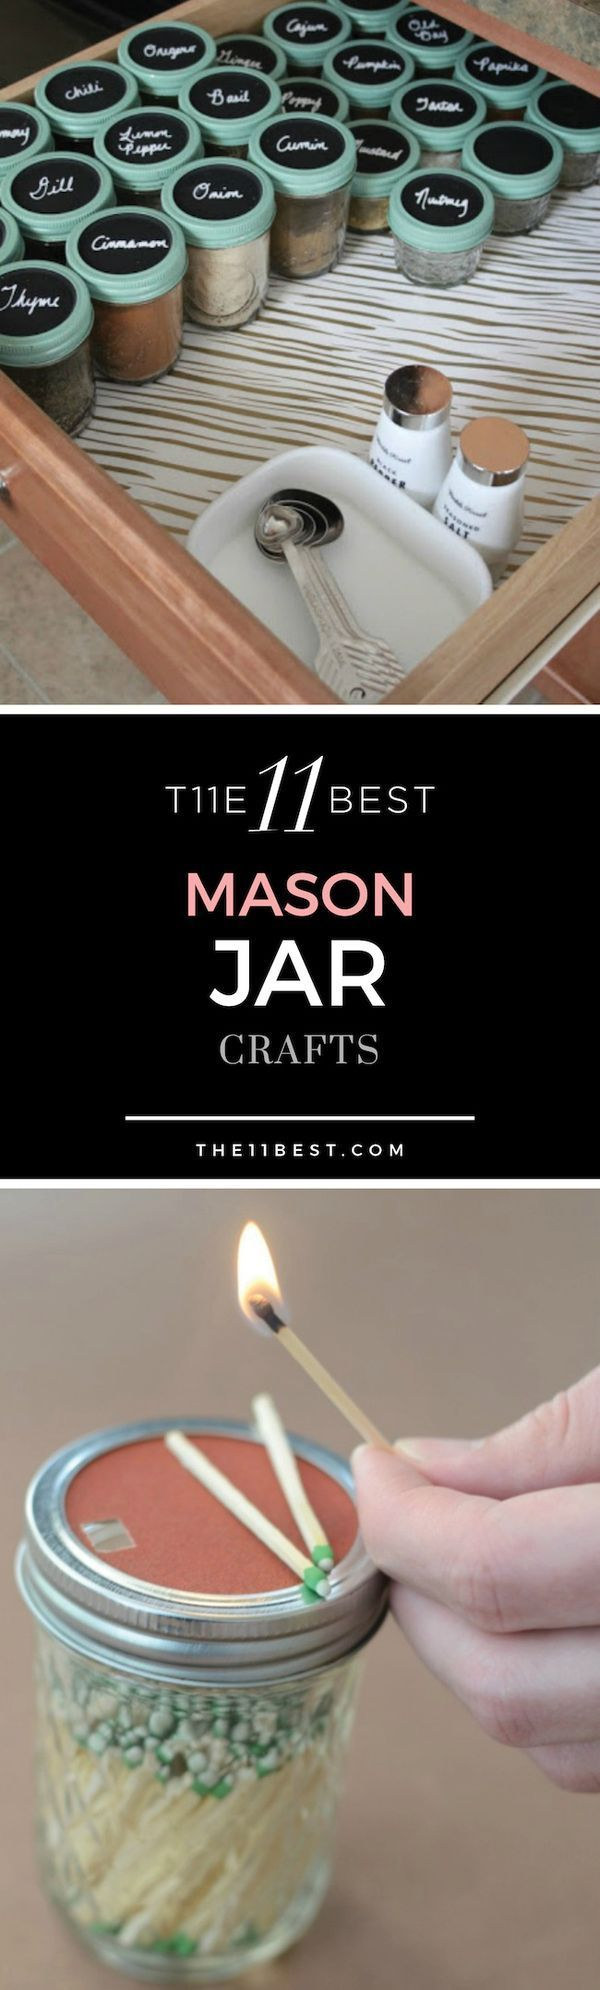 11 Best Mason Jar Crafts Do you love DIY crafts and projects? You'll want to try some of these fun mason jar crafts. Some of them can even be given out as gifts!Do you love DIY crafts and projects? You'll want to try some of these fun mason jar crafts. Some of them can even be given out as gifts!